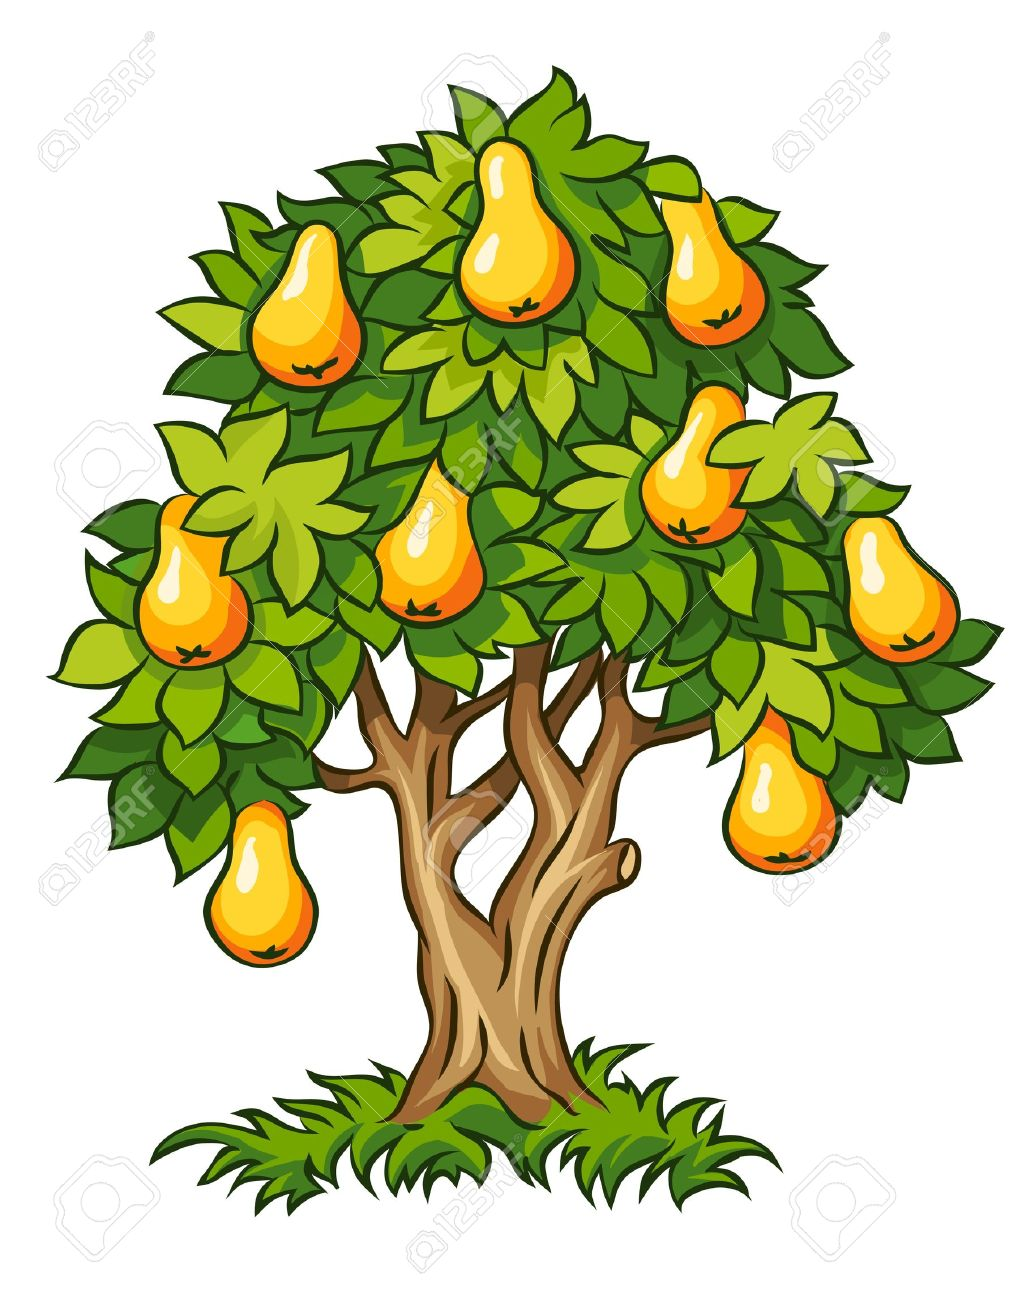 Pear tree clipart - Clipground